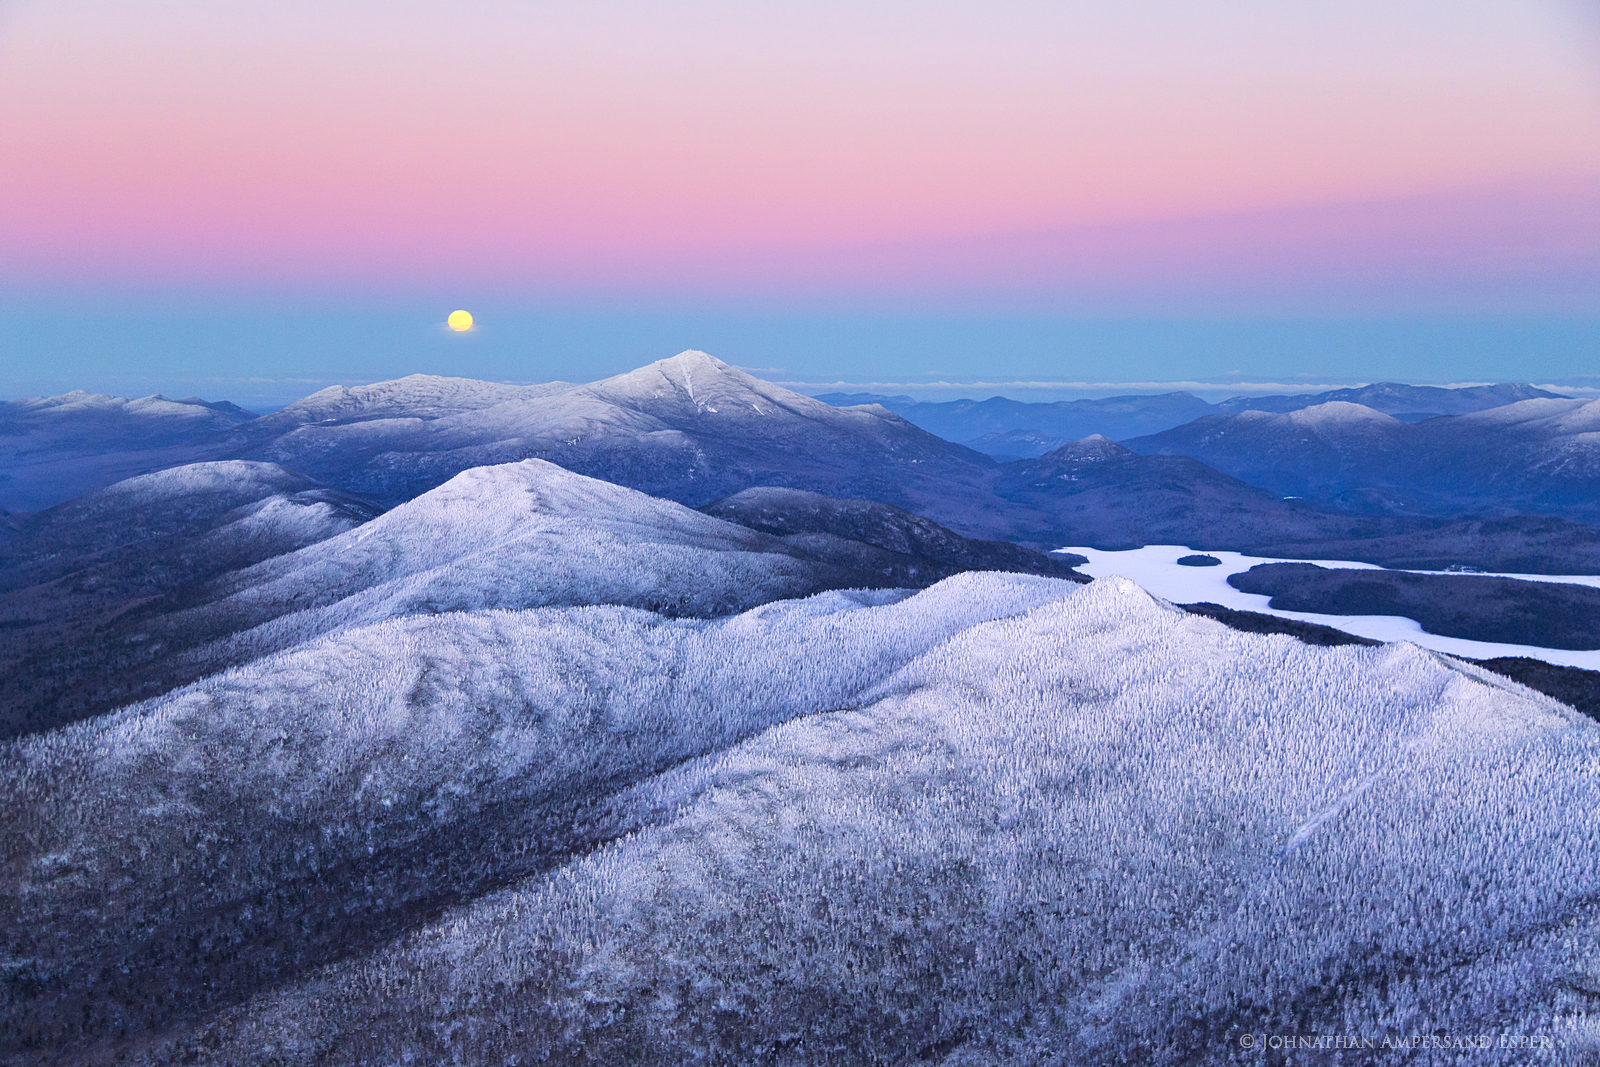 McKenzie Mt,Whiteface Mt,full moon,moon,moonrise,pink,dusk,winter,Lake Placid,High Peaks,Adirondacks,Adirondack,region,rising,full,moon,snowy,cold, photo